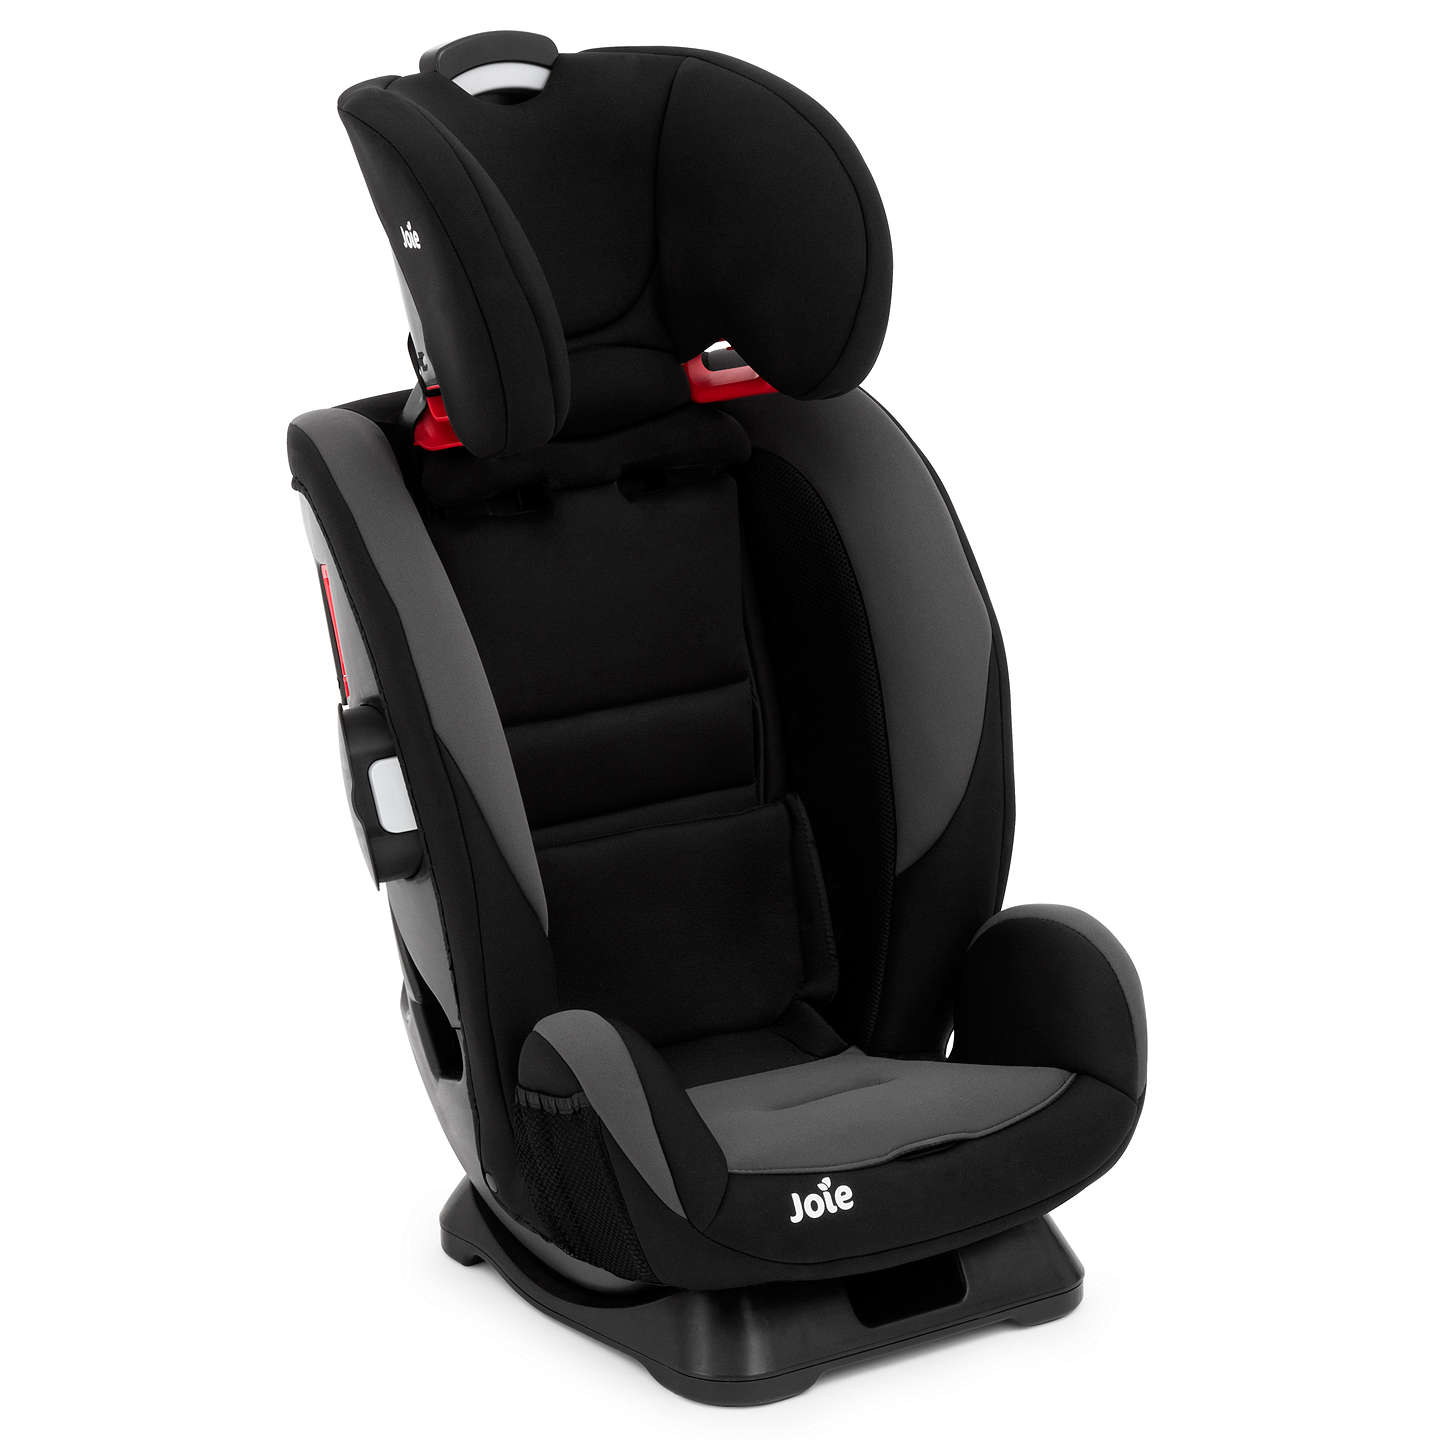 joie every stage group 0 1 2 3 car seat black at john lewis. Black Bedroom Furniture Sets. Home Design Ideas